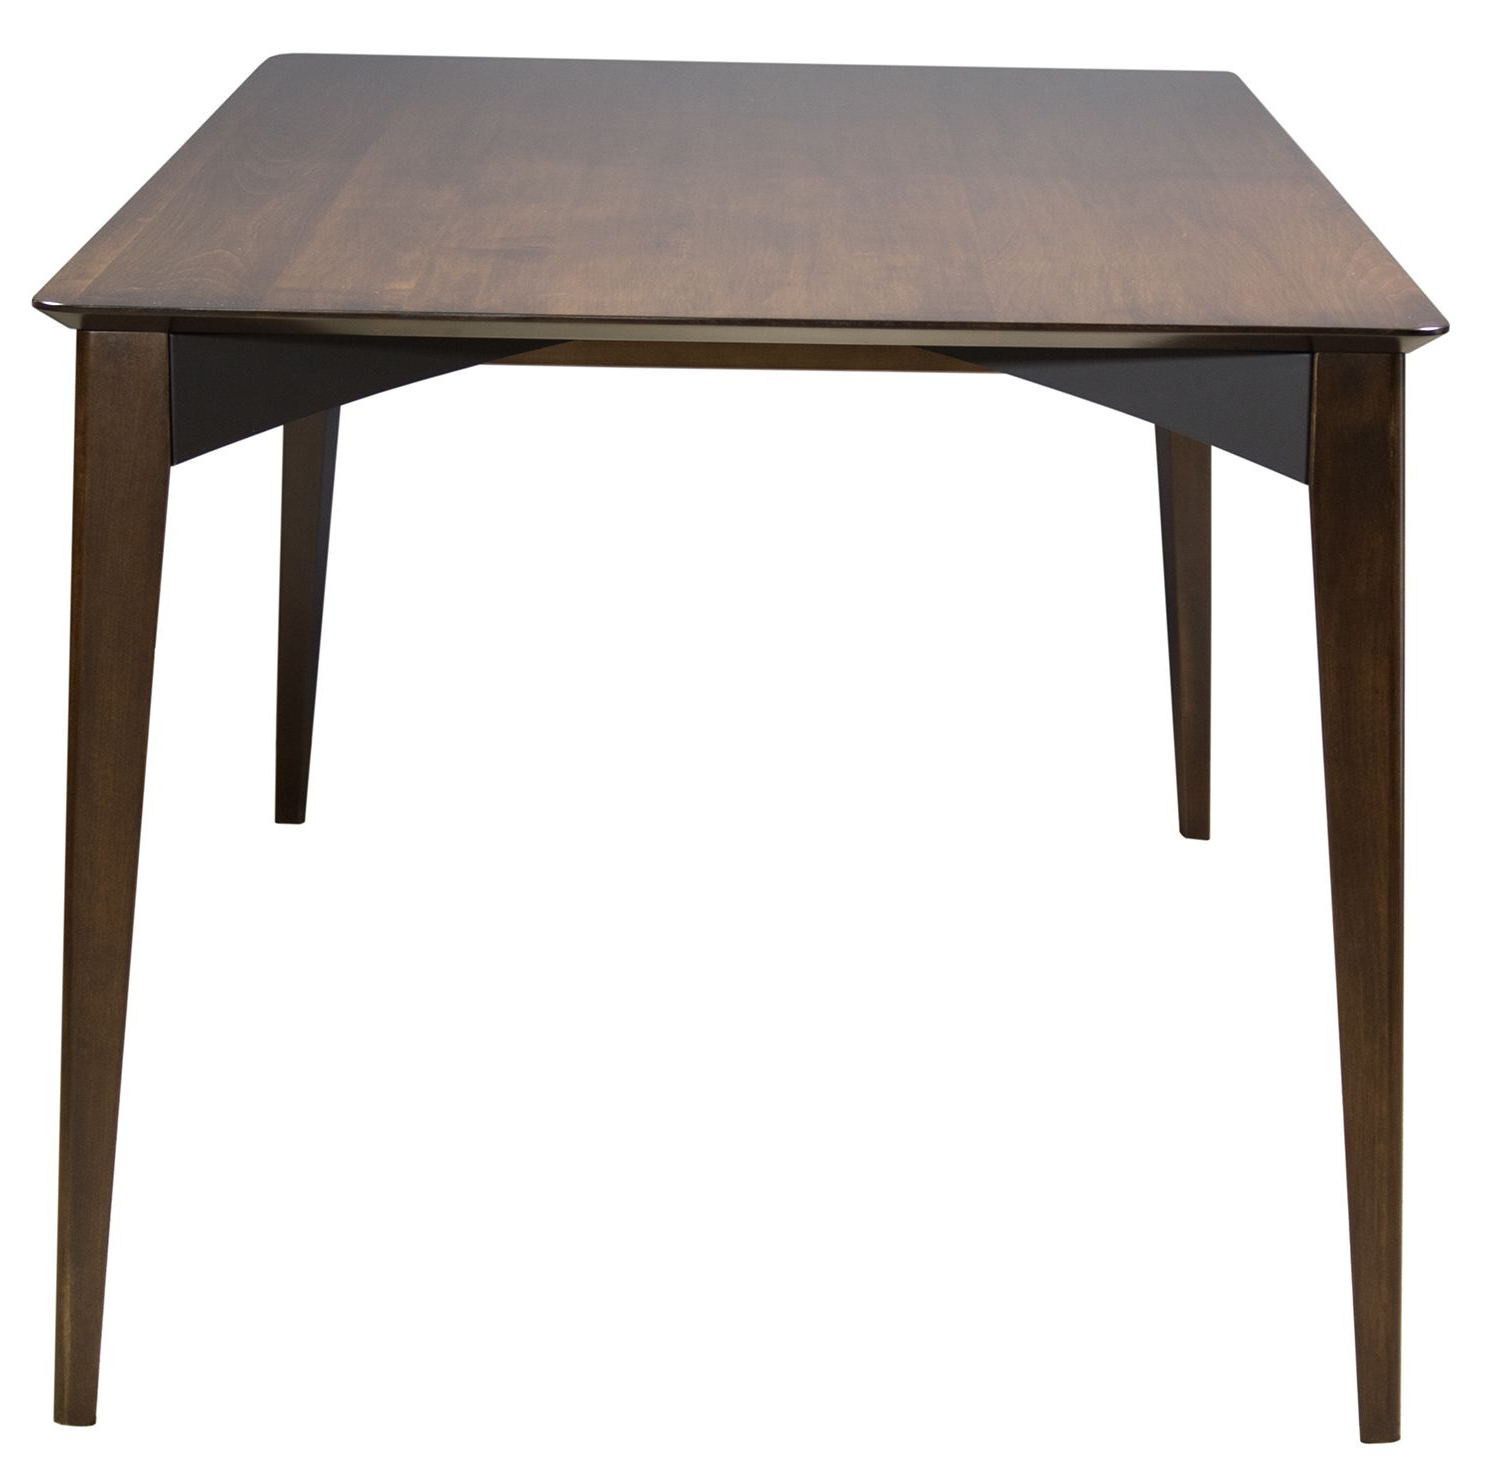 Remi Dining Table In Amaretto Finish From Saloom. Tables & Consoles Regarding Remi Console Tables (Gallery 13 of 20)